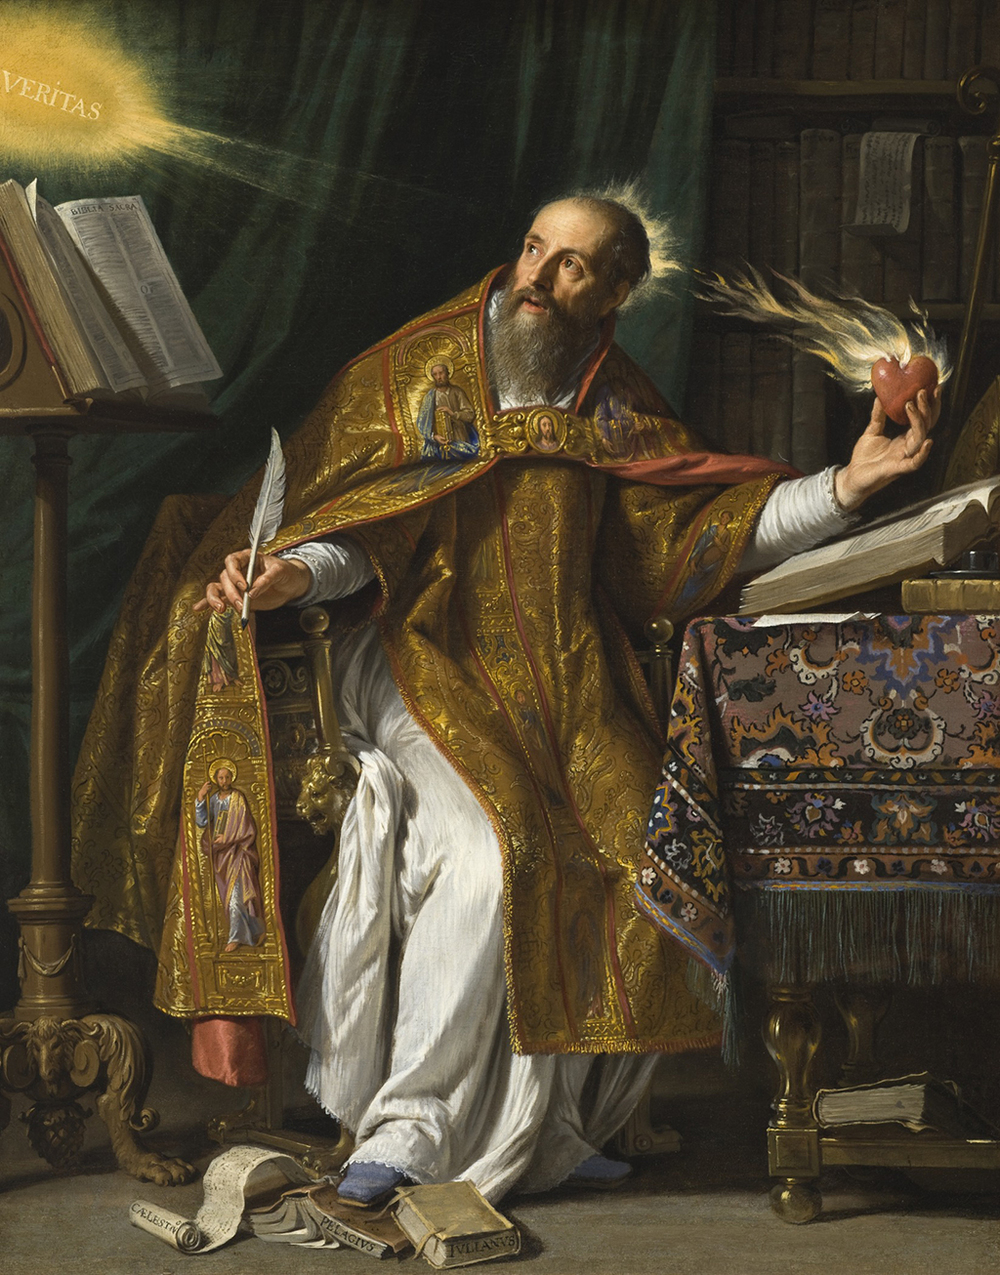 Saint Augustine, by Philippe de Champaigne, 1650. In this painting, the Flemish artist Philippe de Champaigne portrays Augustine in his studio. In one hand Augustine holds a feather pen, and in the other, a flaming heart. The flaming heart – a heart on fire for God – was one of Augustine's traditional attributes.